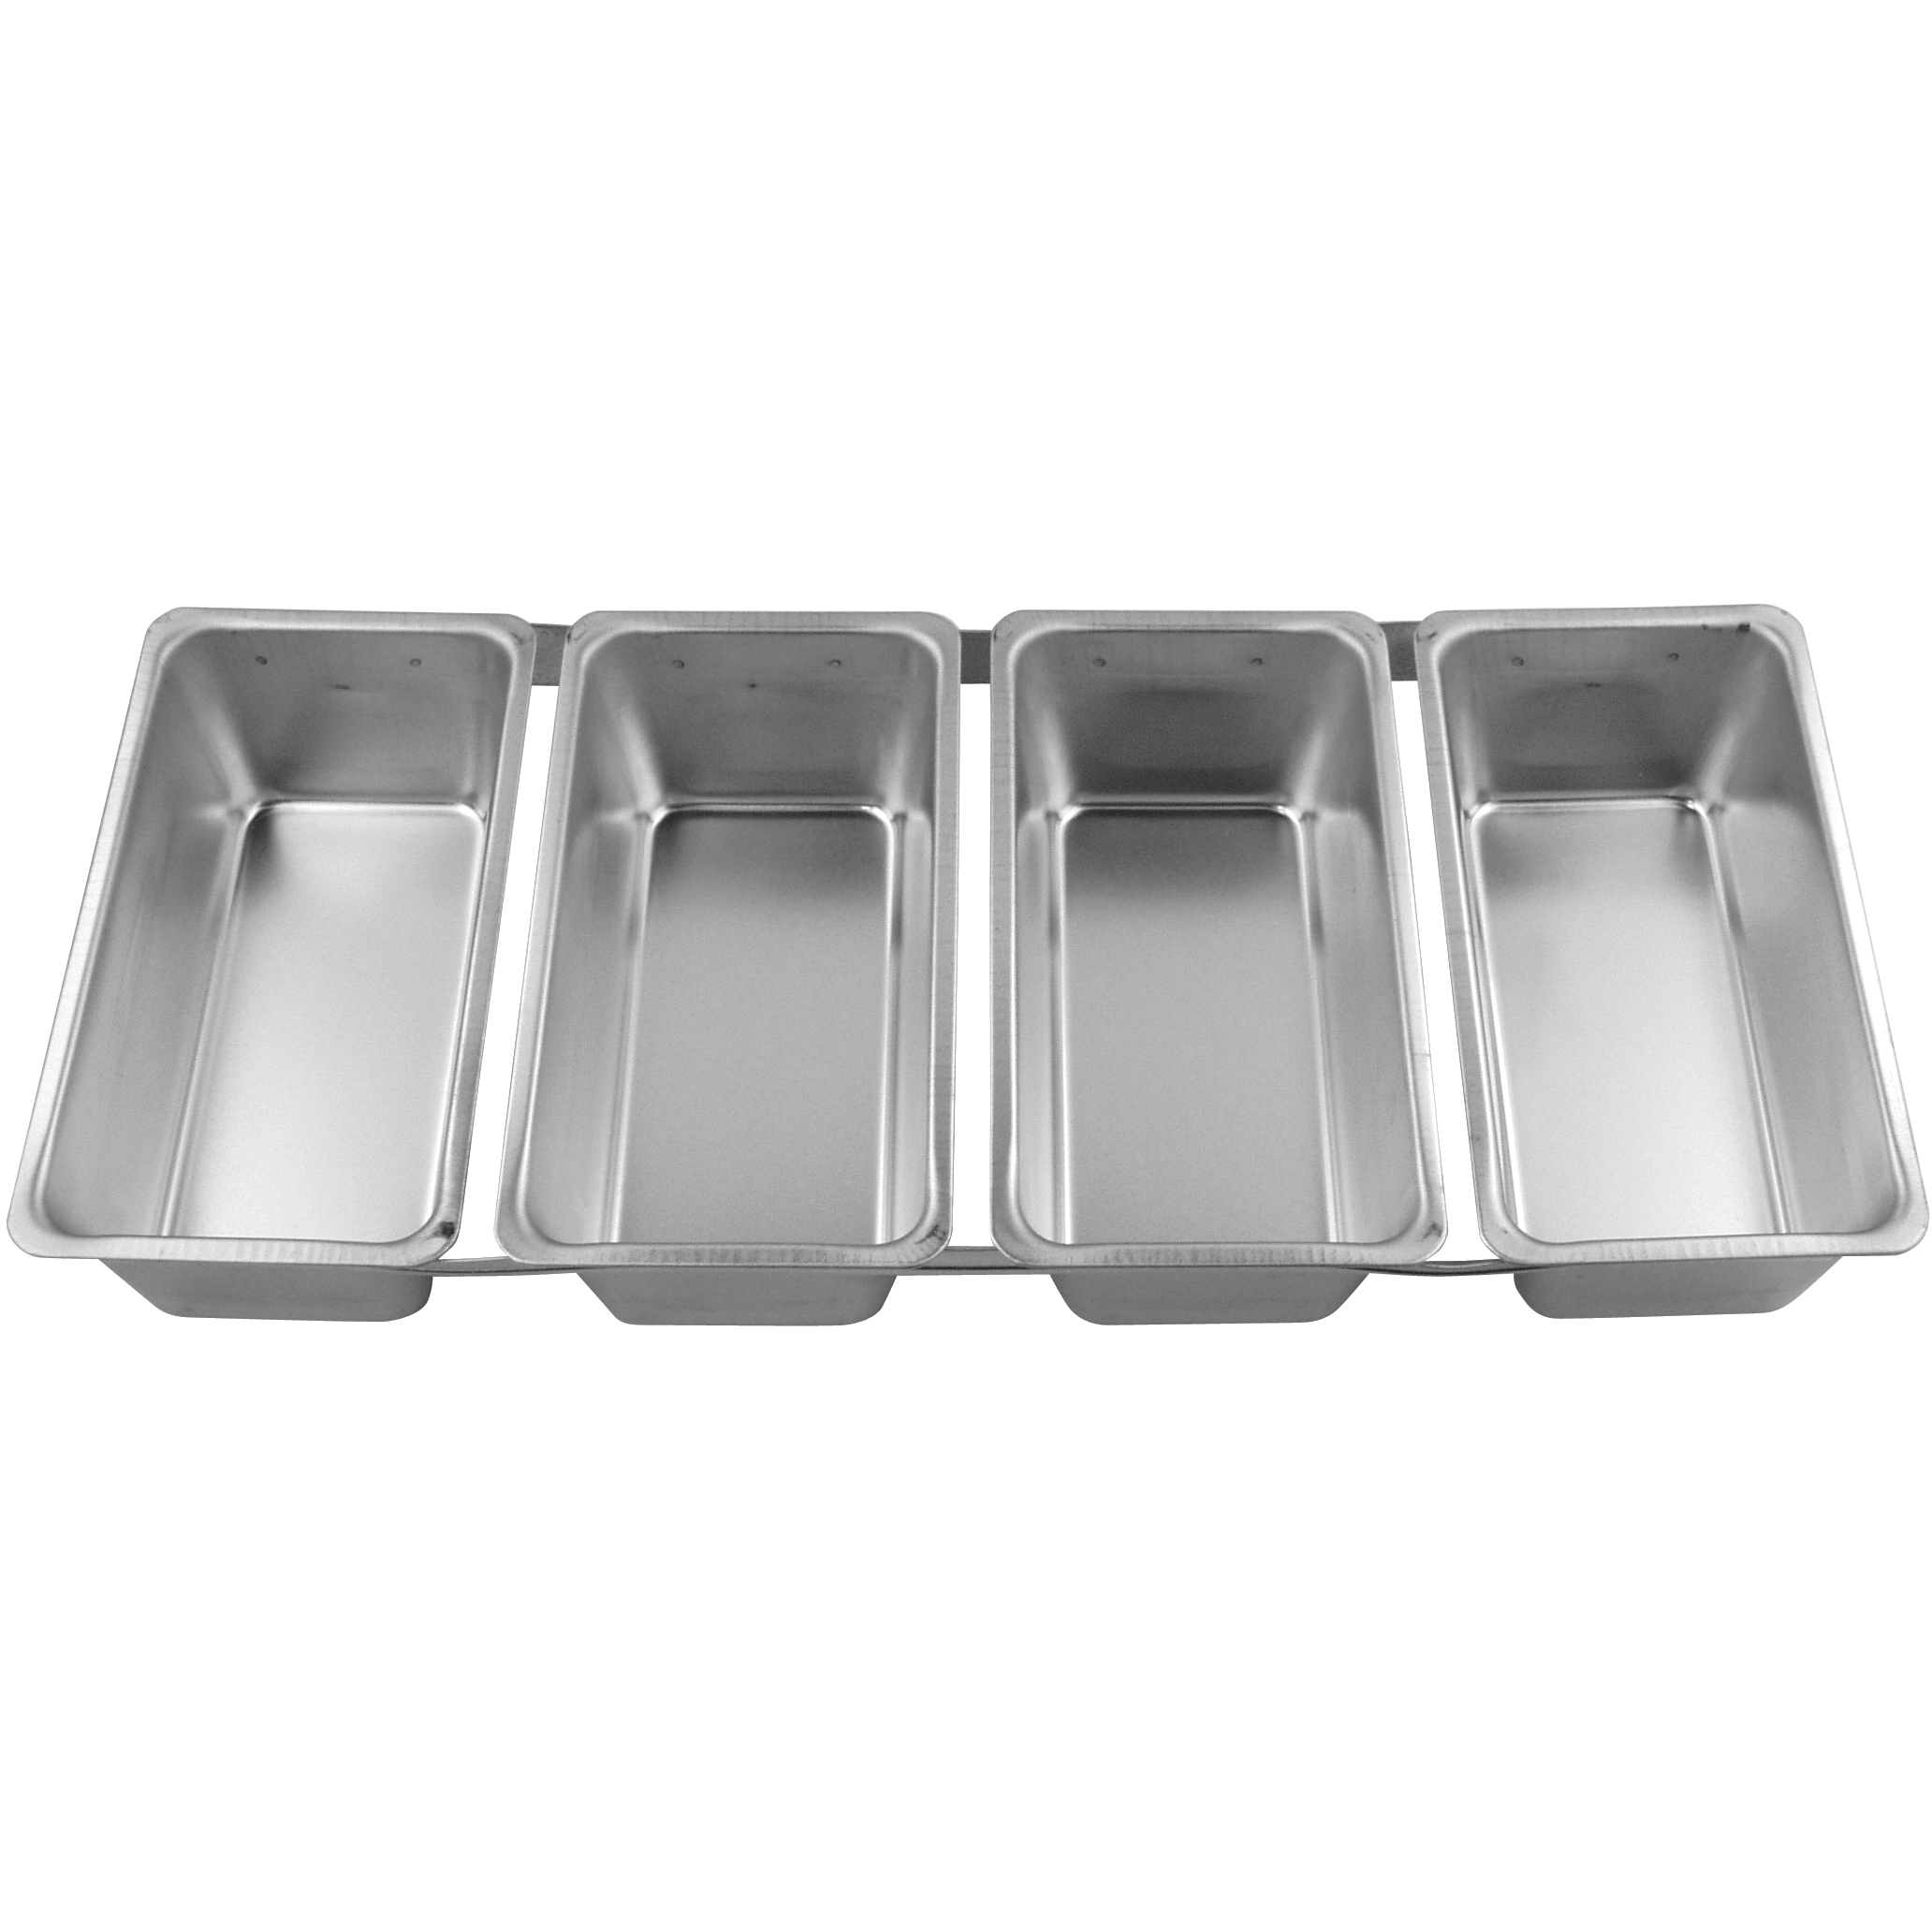 Foxrun Tinplated Steel Linked Loaf Pan, Set of 4